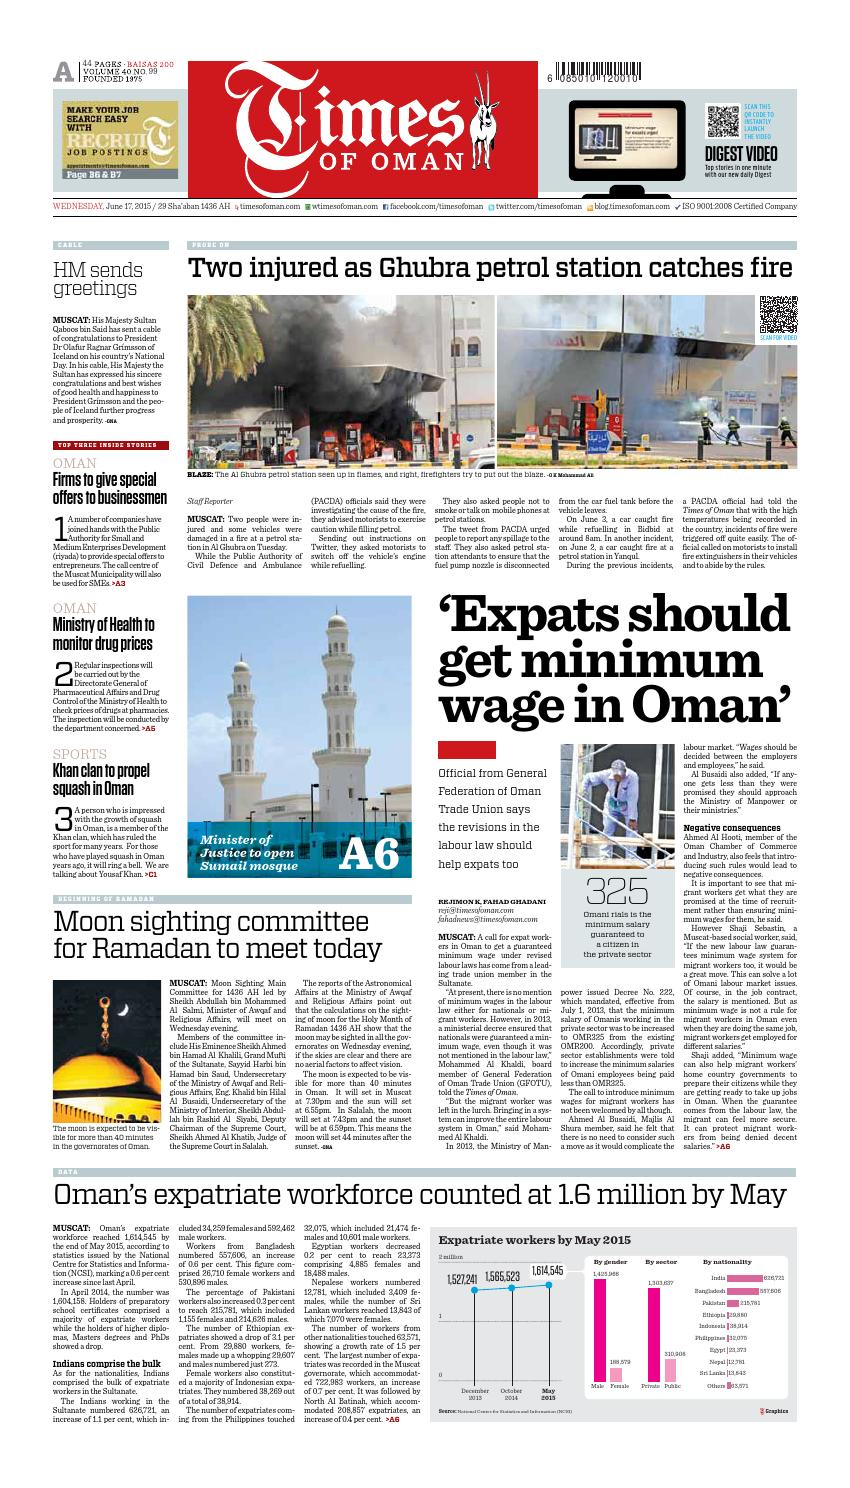 Times of Oman - June 17, 2015 by Muscat Media Group - issuu